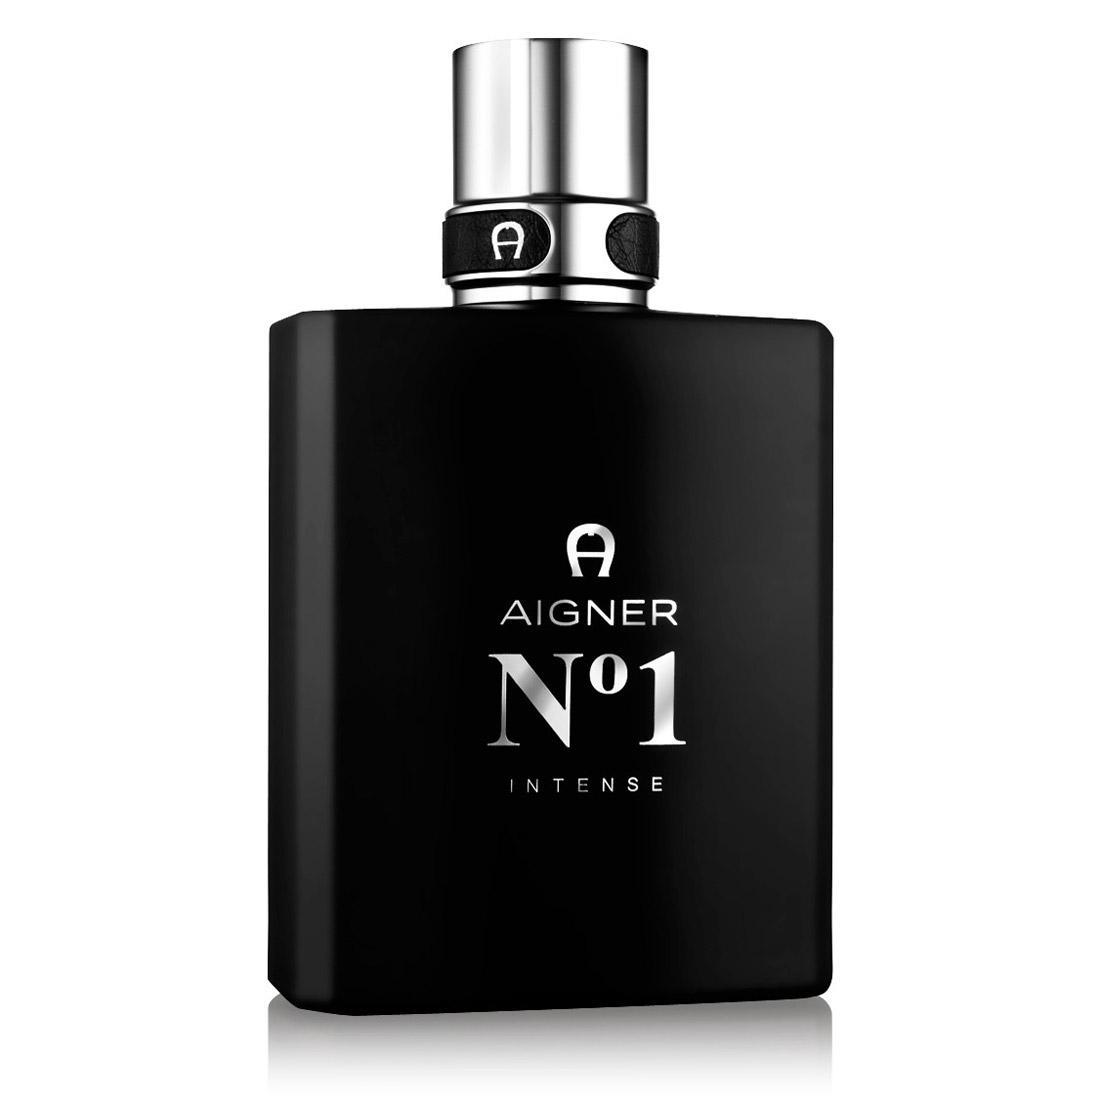 اگنرنامبر وان اینتنس ( ایگنر ) - Aigner No 1 Intense